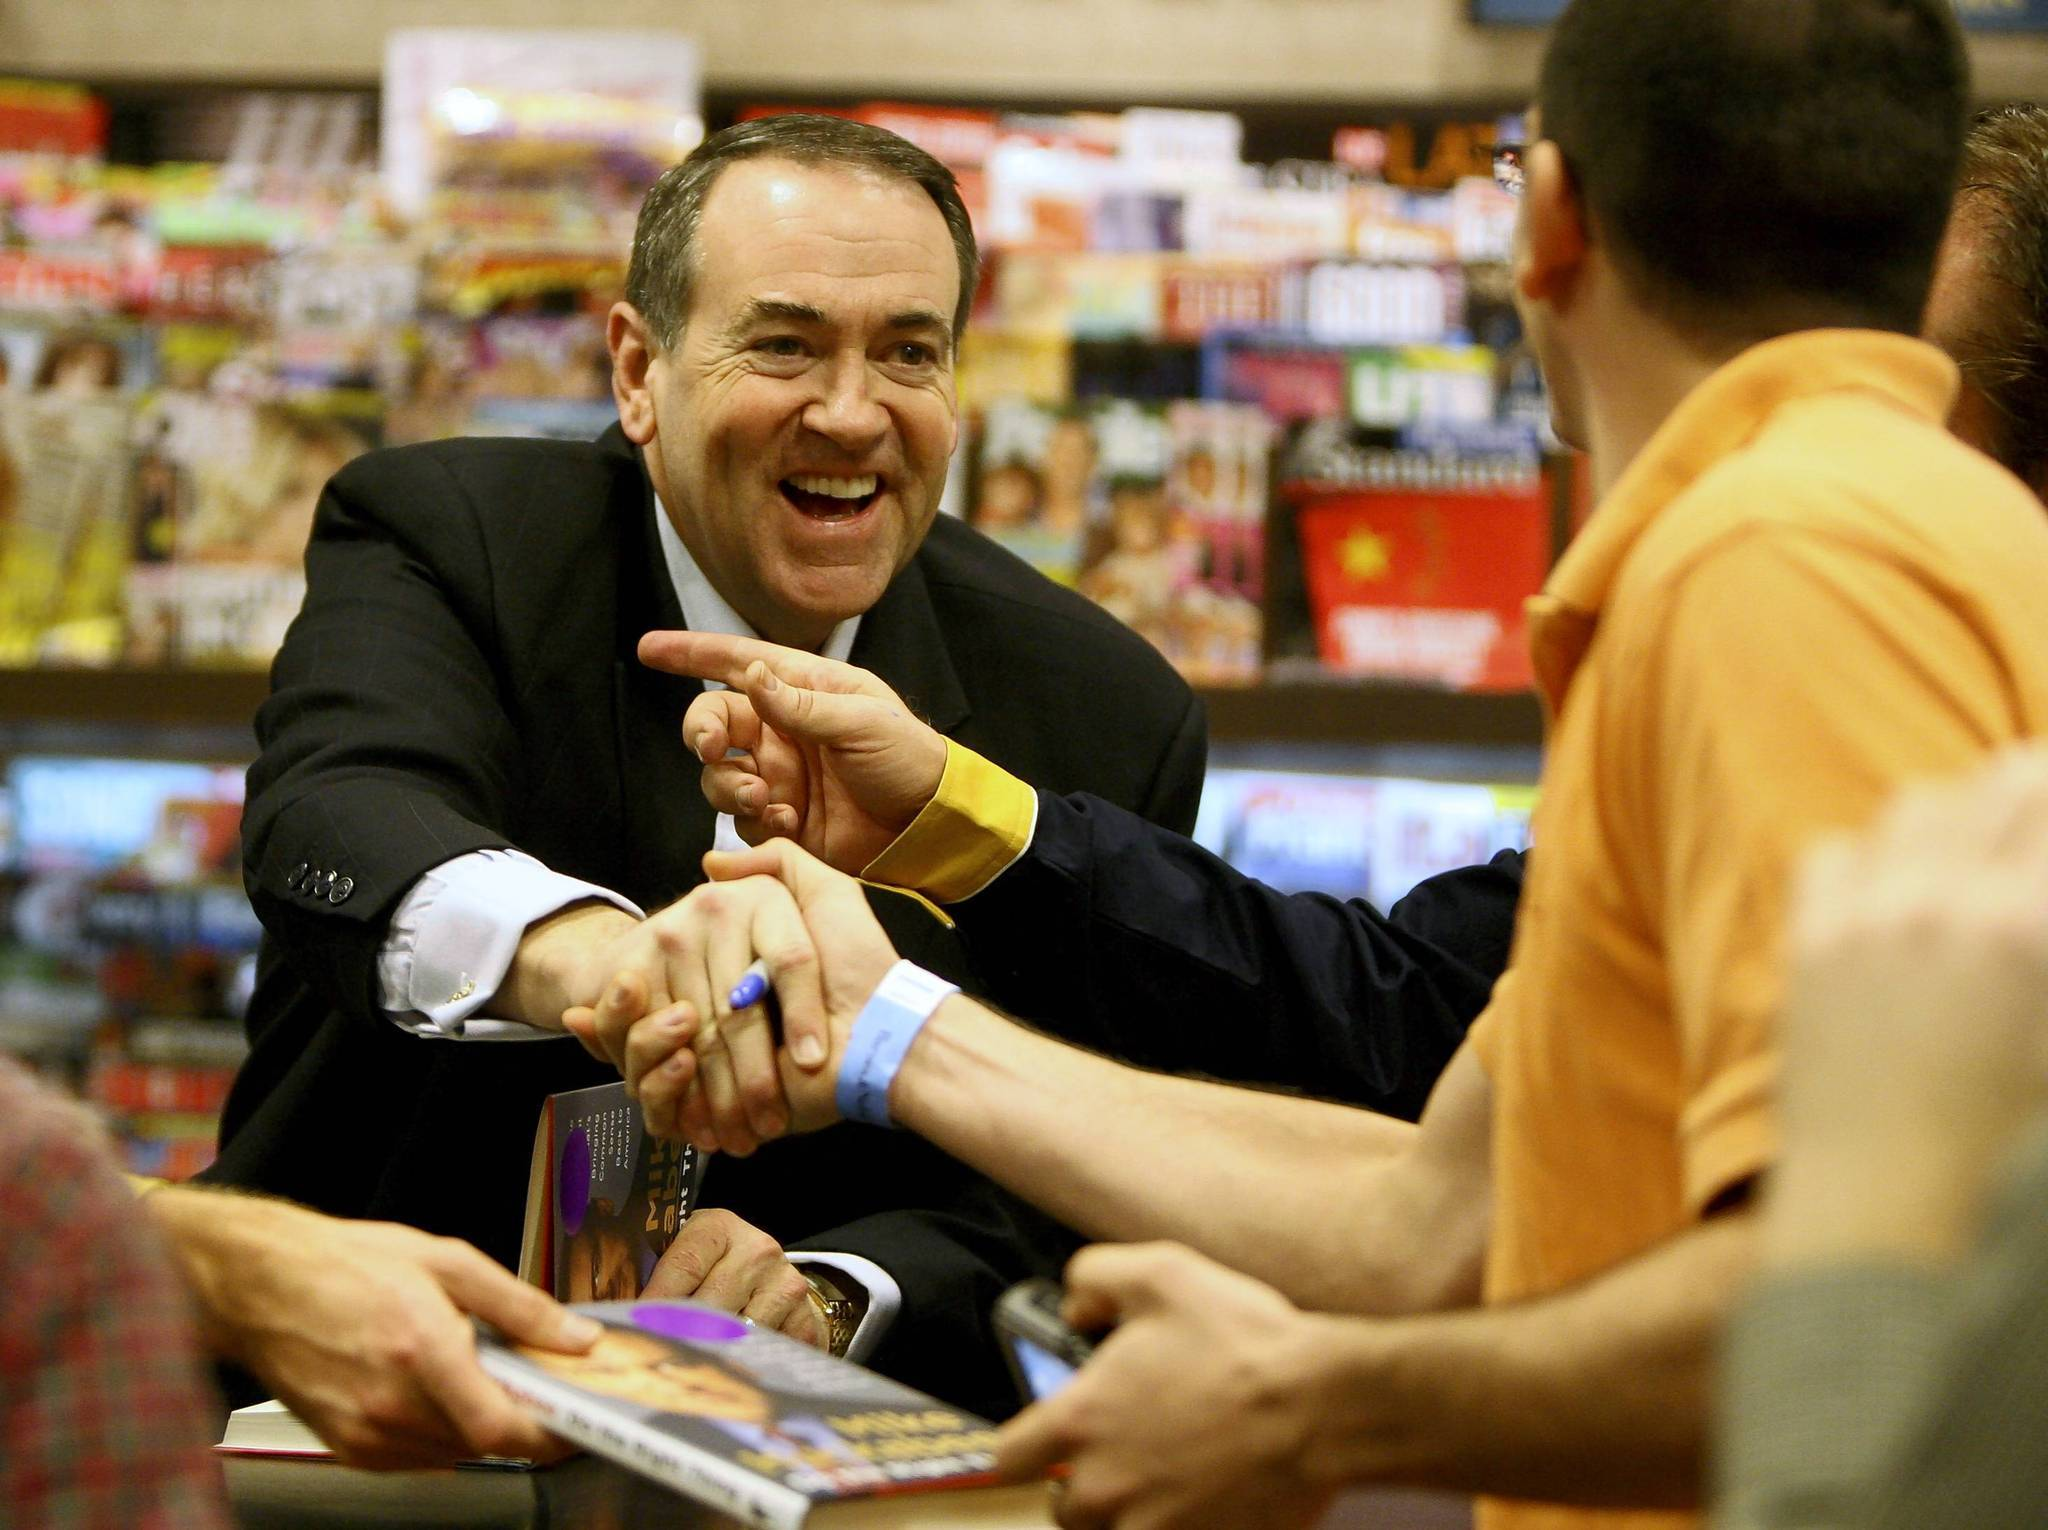 Mike Huckabee greets a fan during his book signing at the Barnes &amp; Noble at Colonial Plaza in Orlando on Dec. 8, 2008.